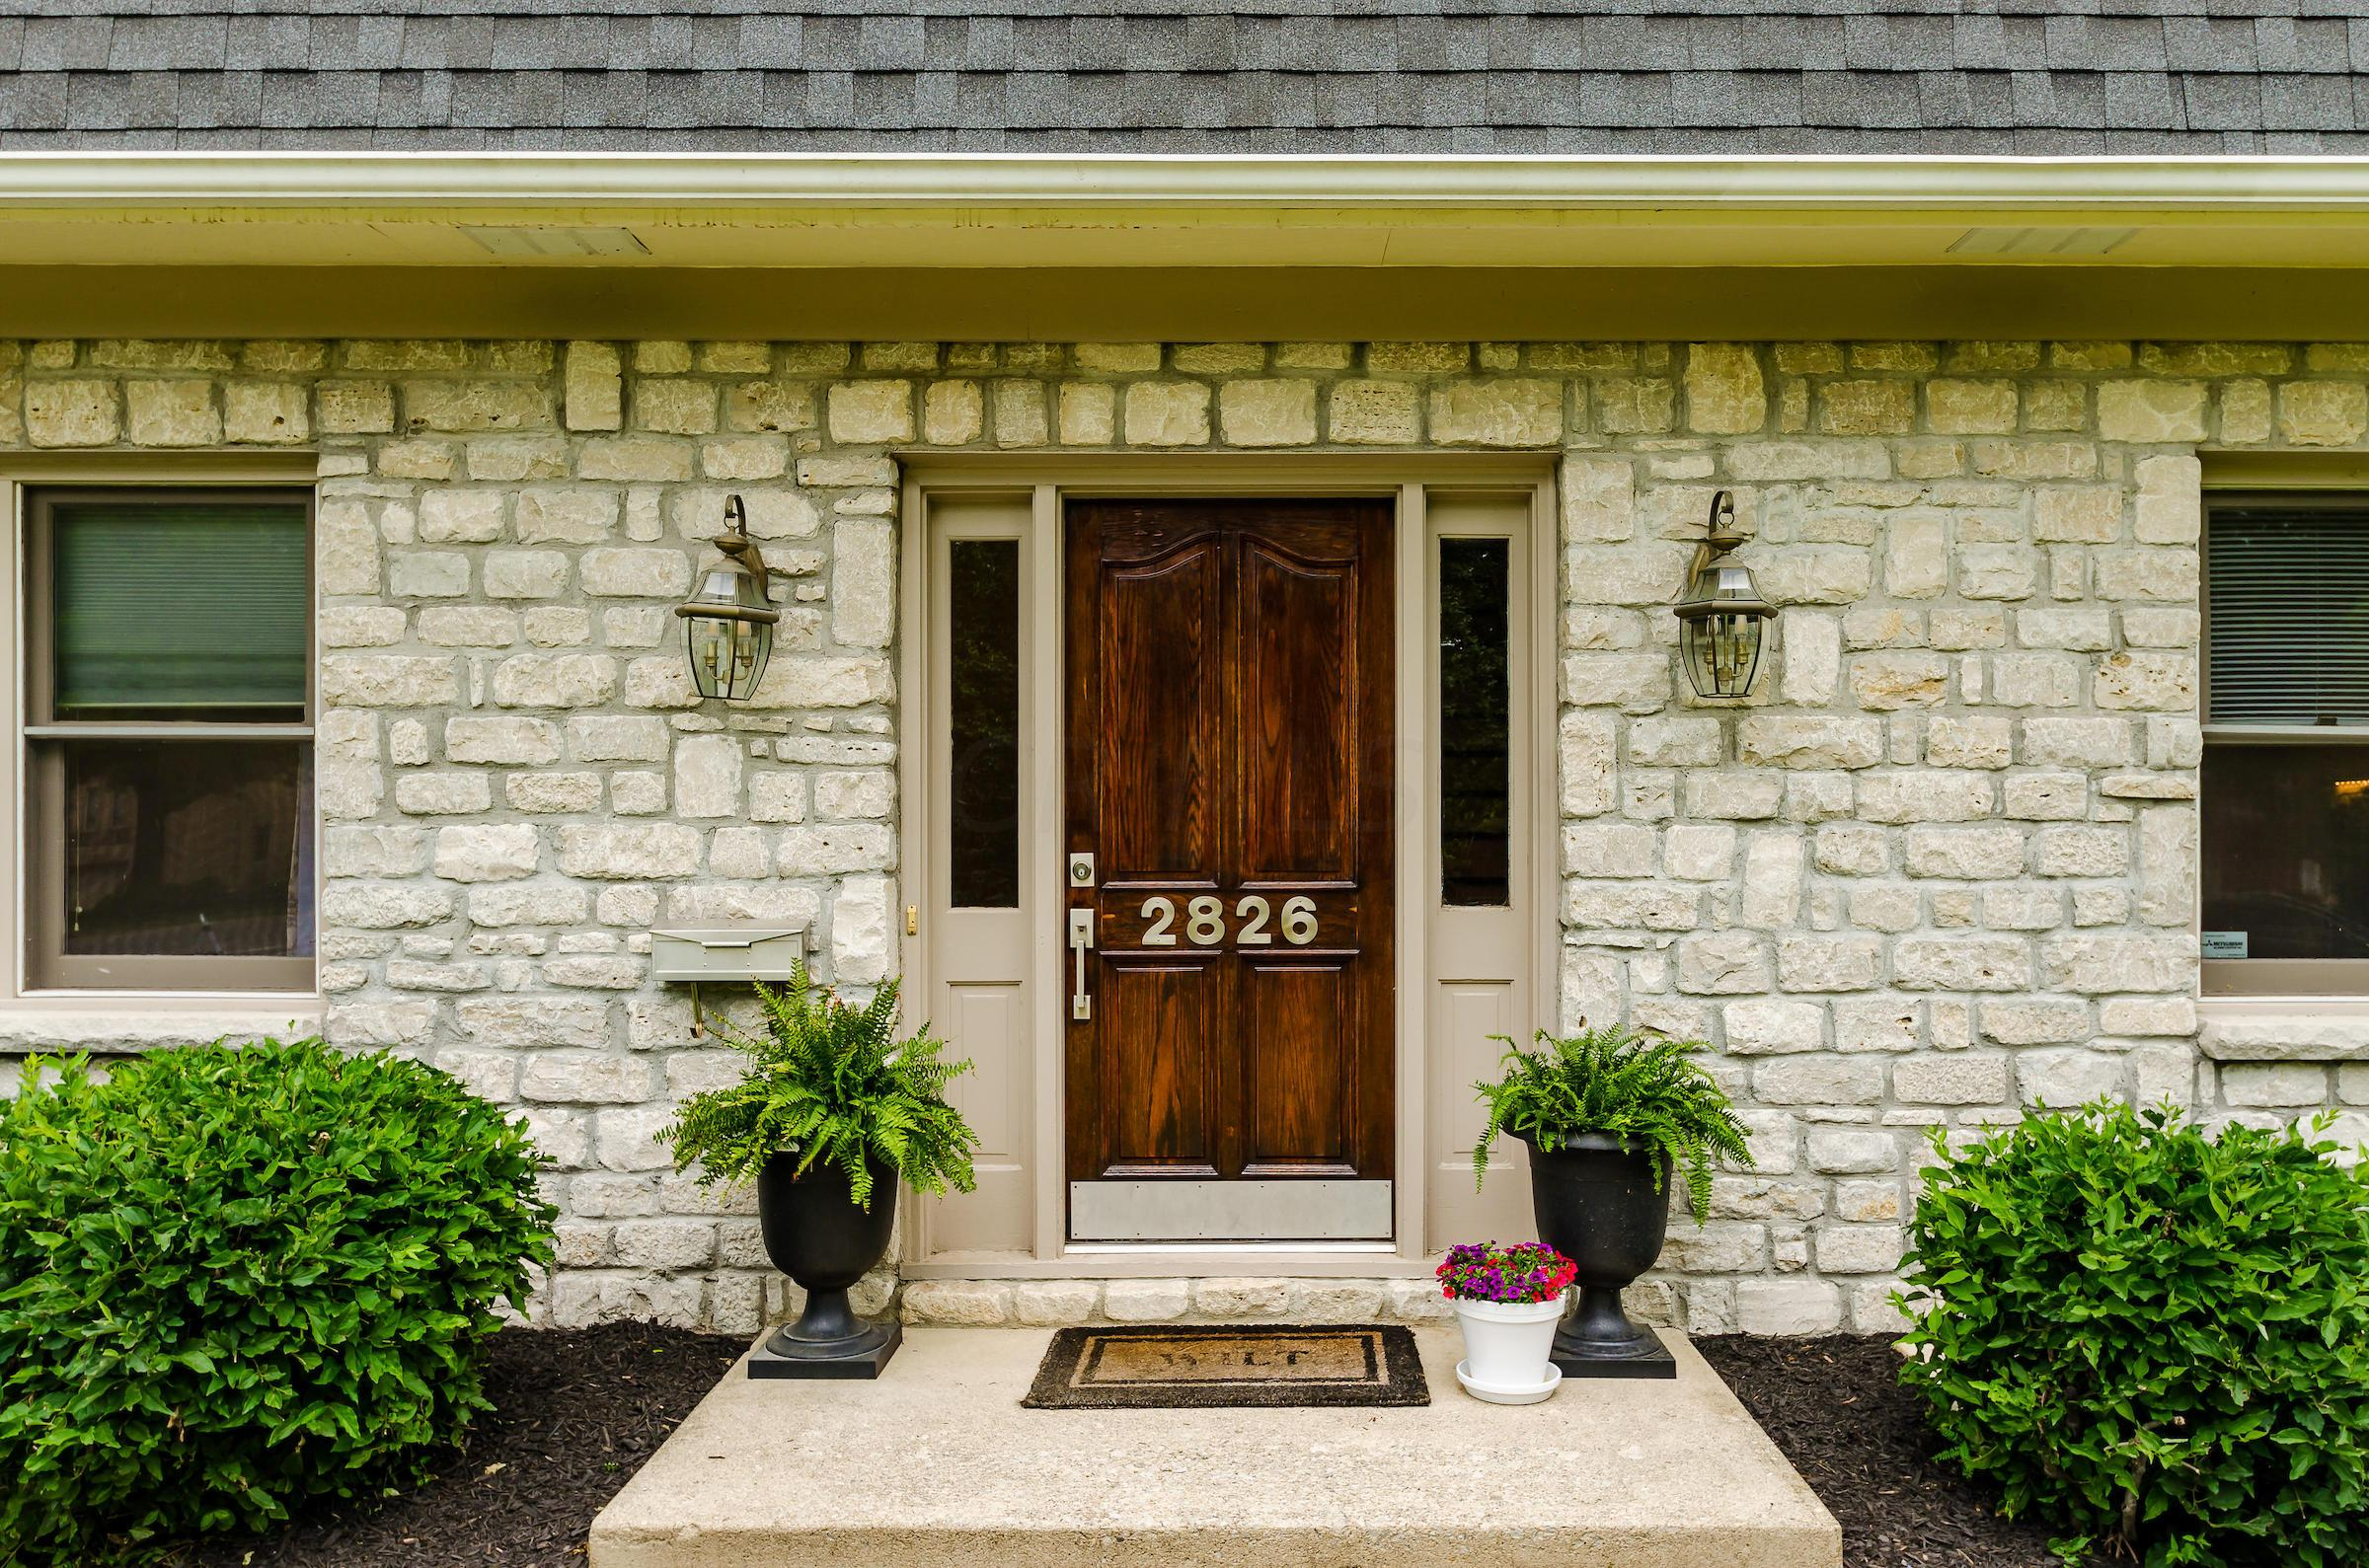 Property for sale at 2826 Folkstone Road, Upper Arlington, Ohio 43220